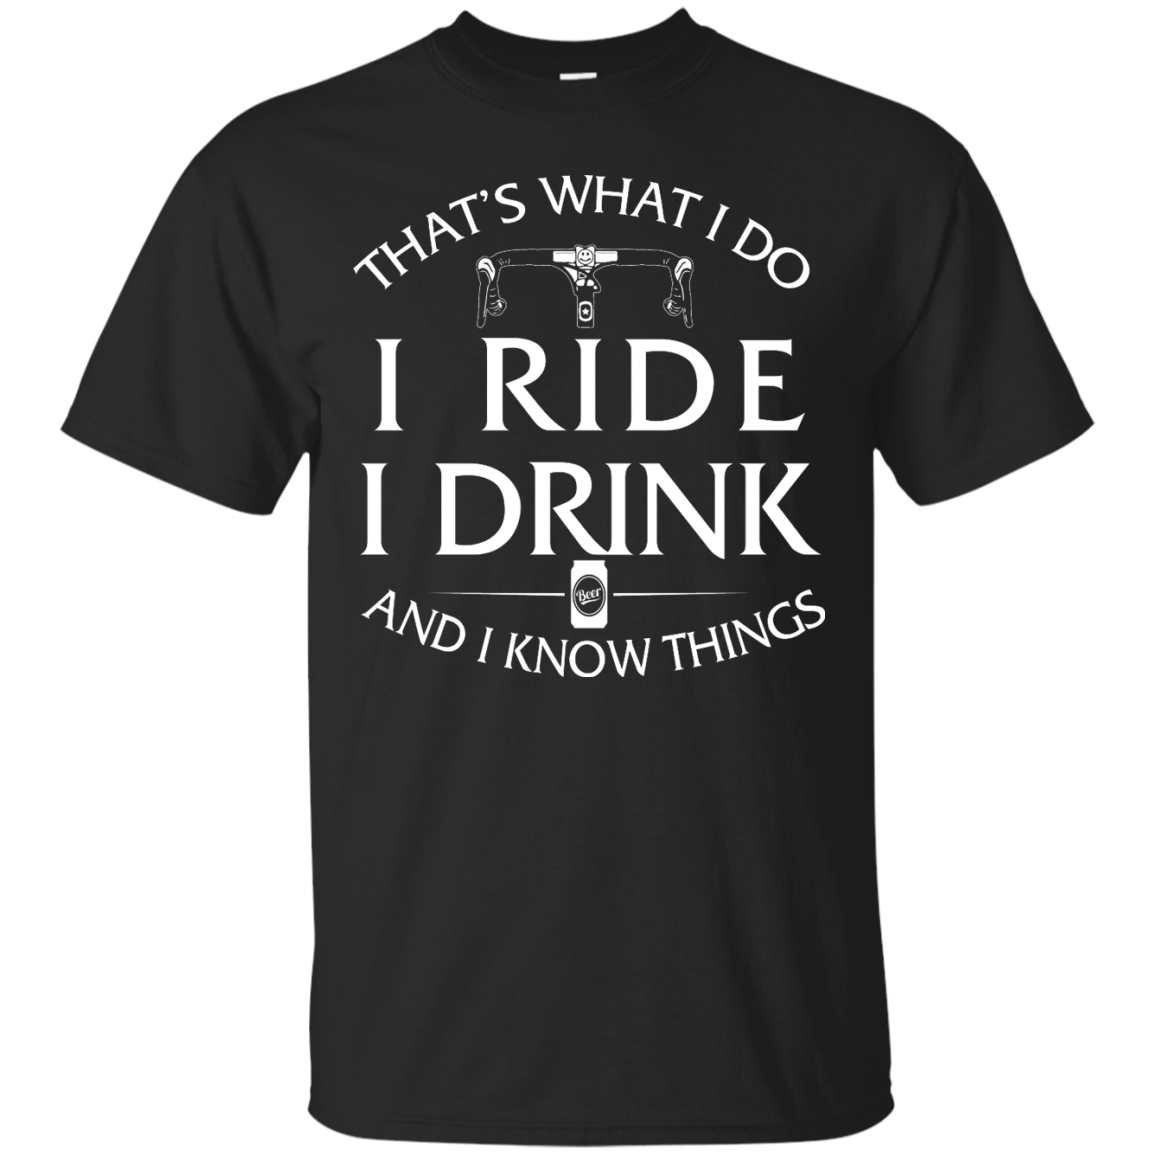 Cycling T Shirt: That's What I Do, I Ride, I Drink and I Know Things